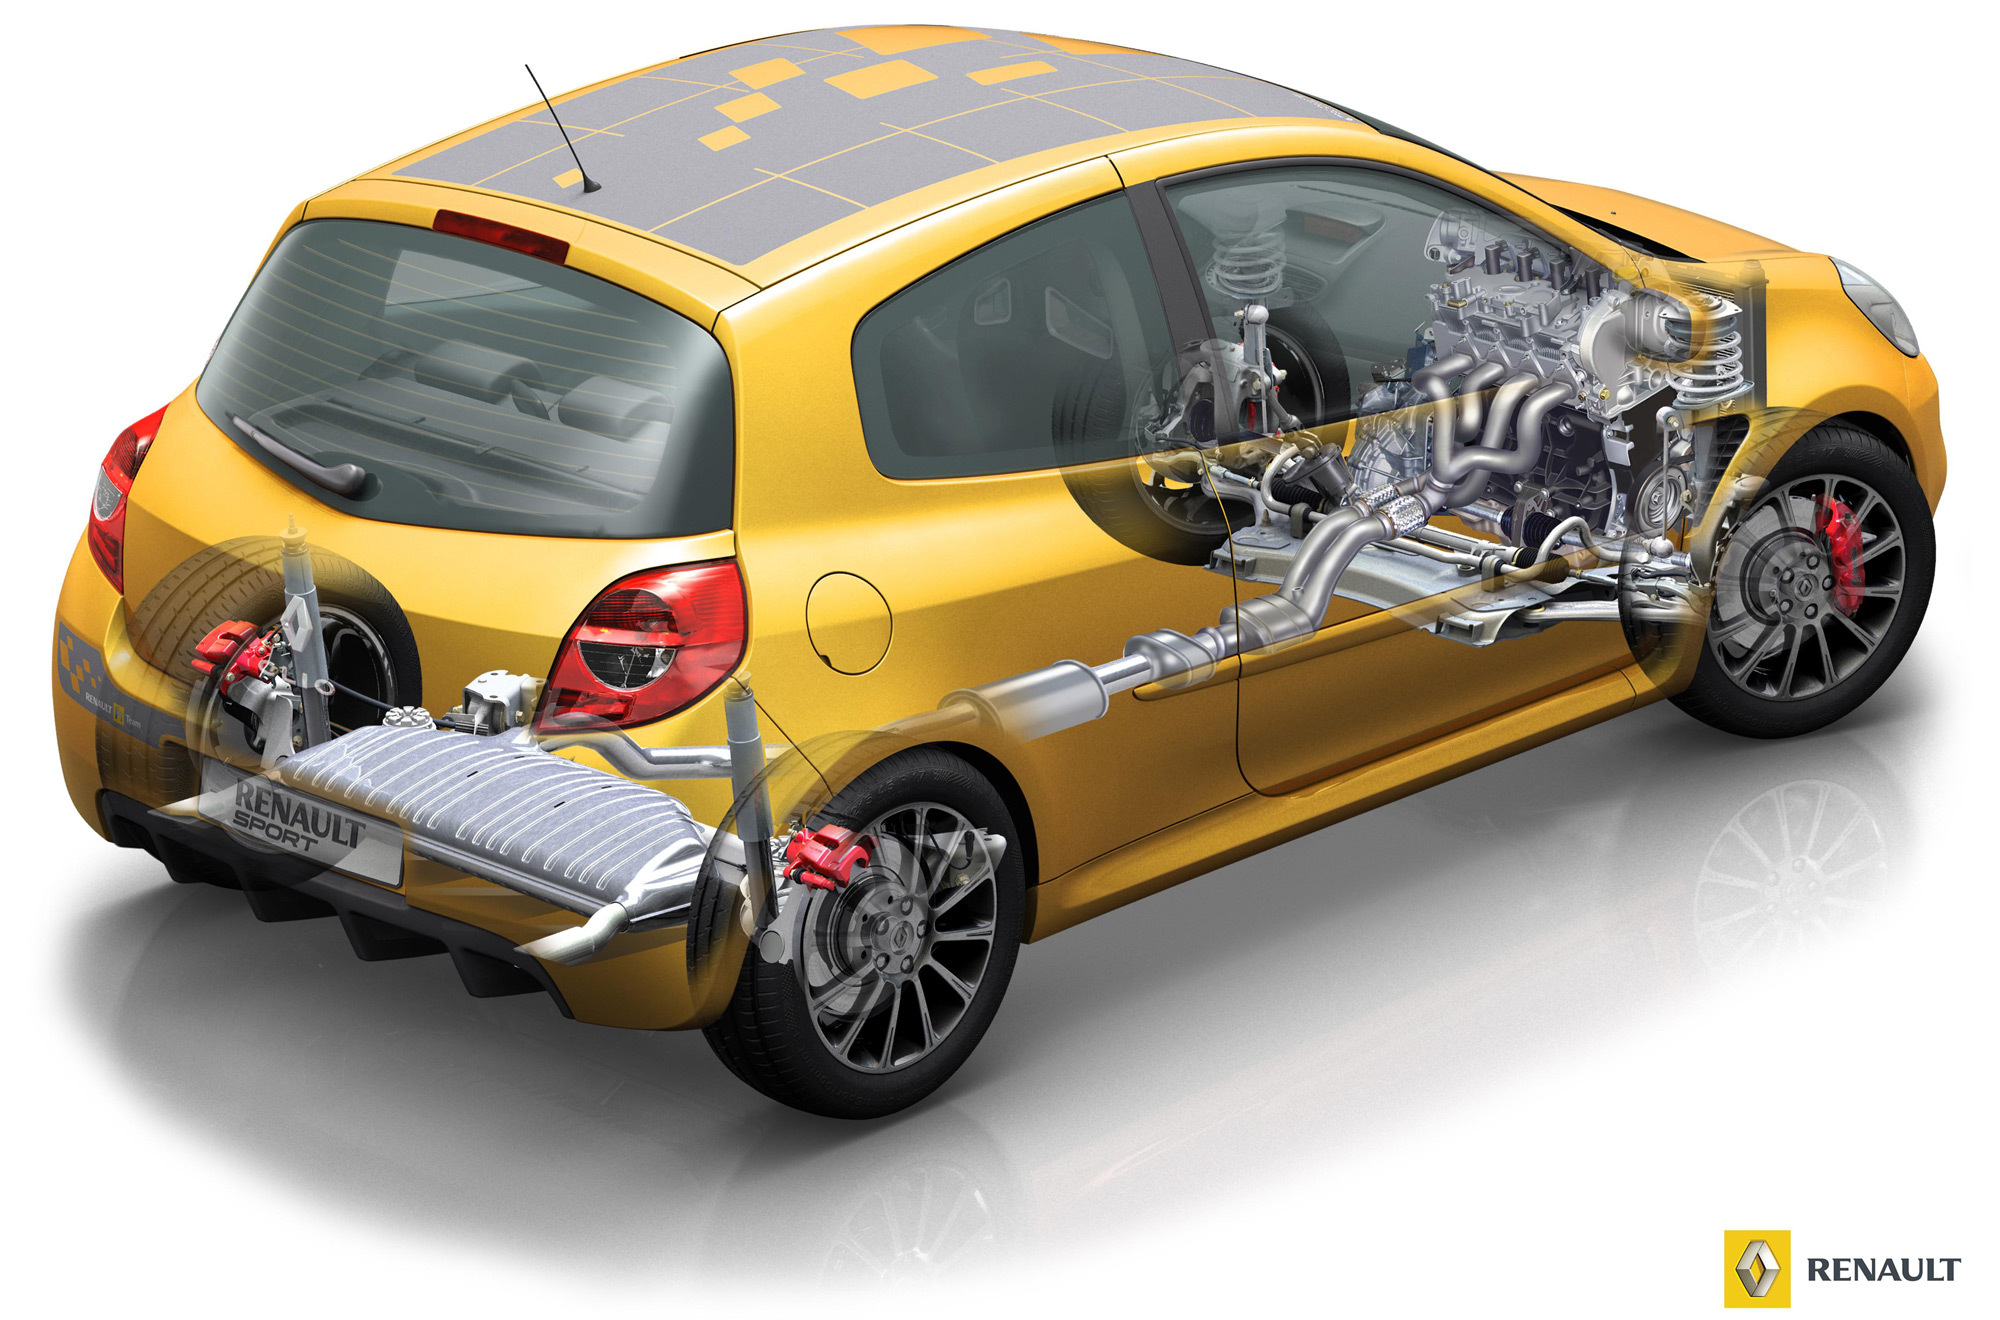 renault clio renault sport photos and comments www. Black Bedroom Furniture Sets. Home Design Ideas